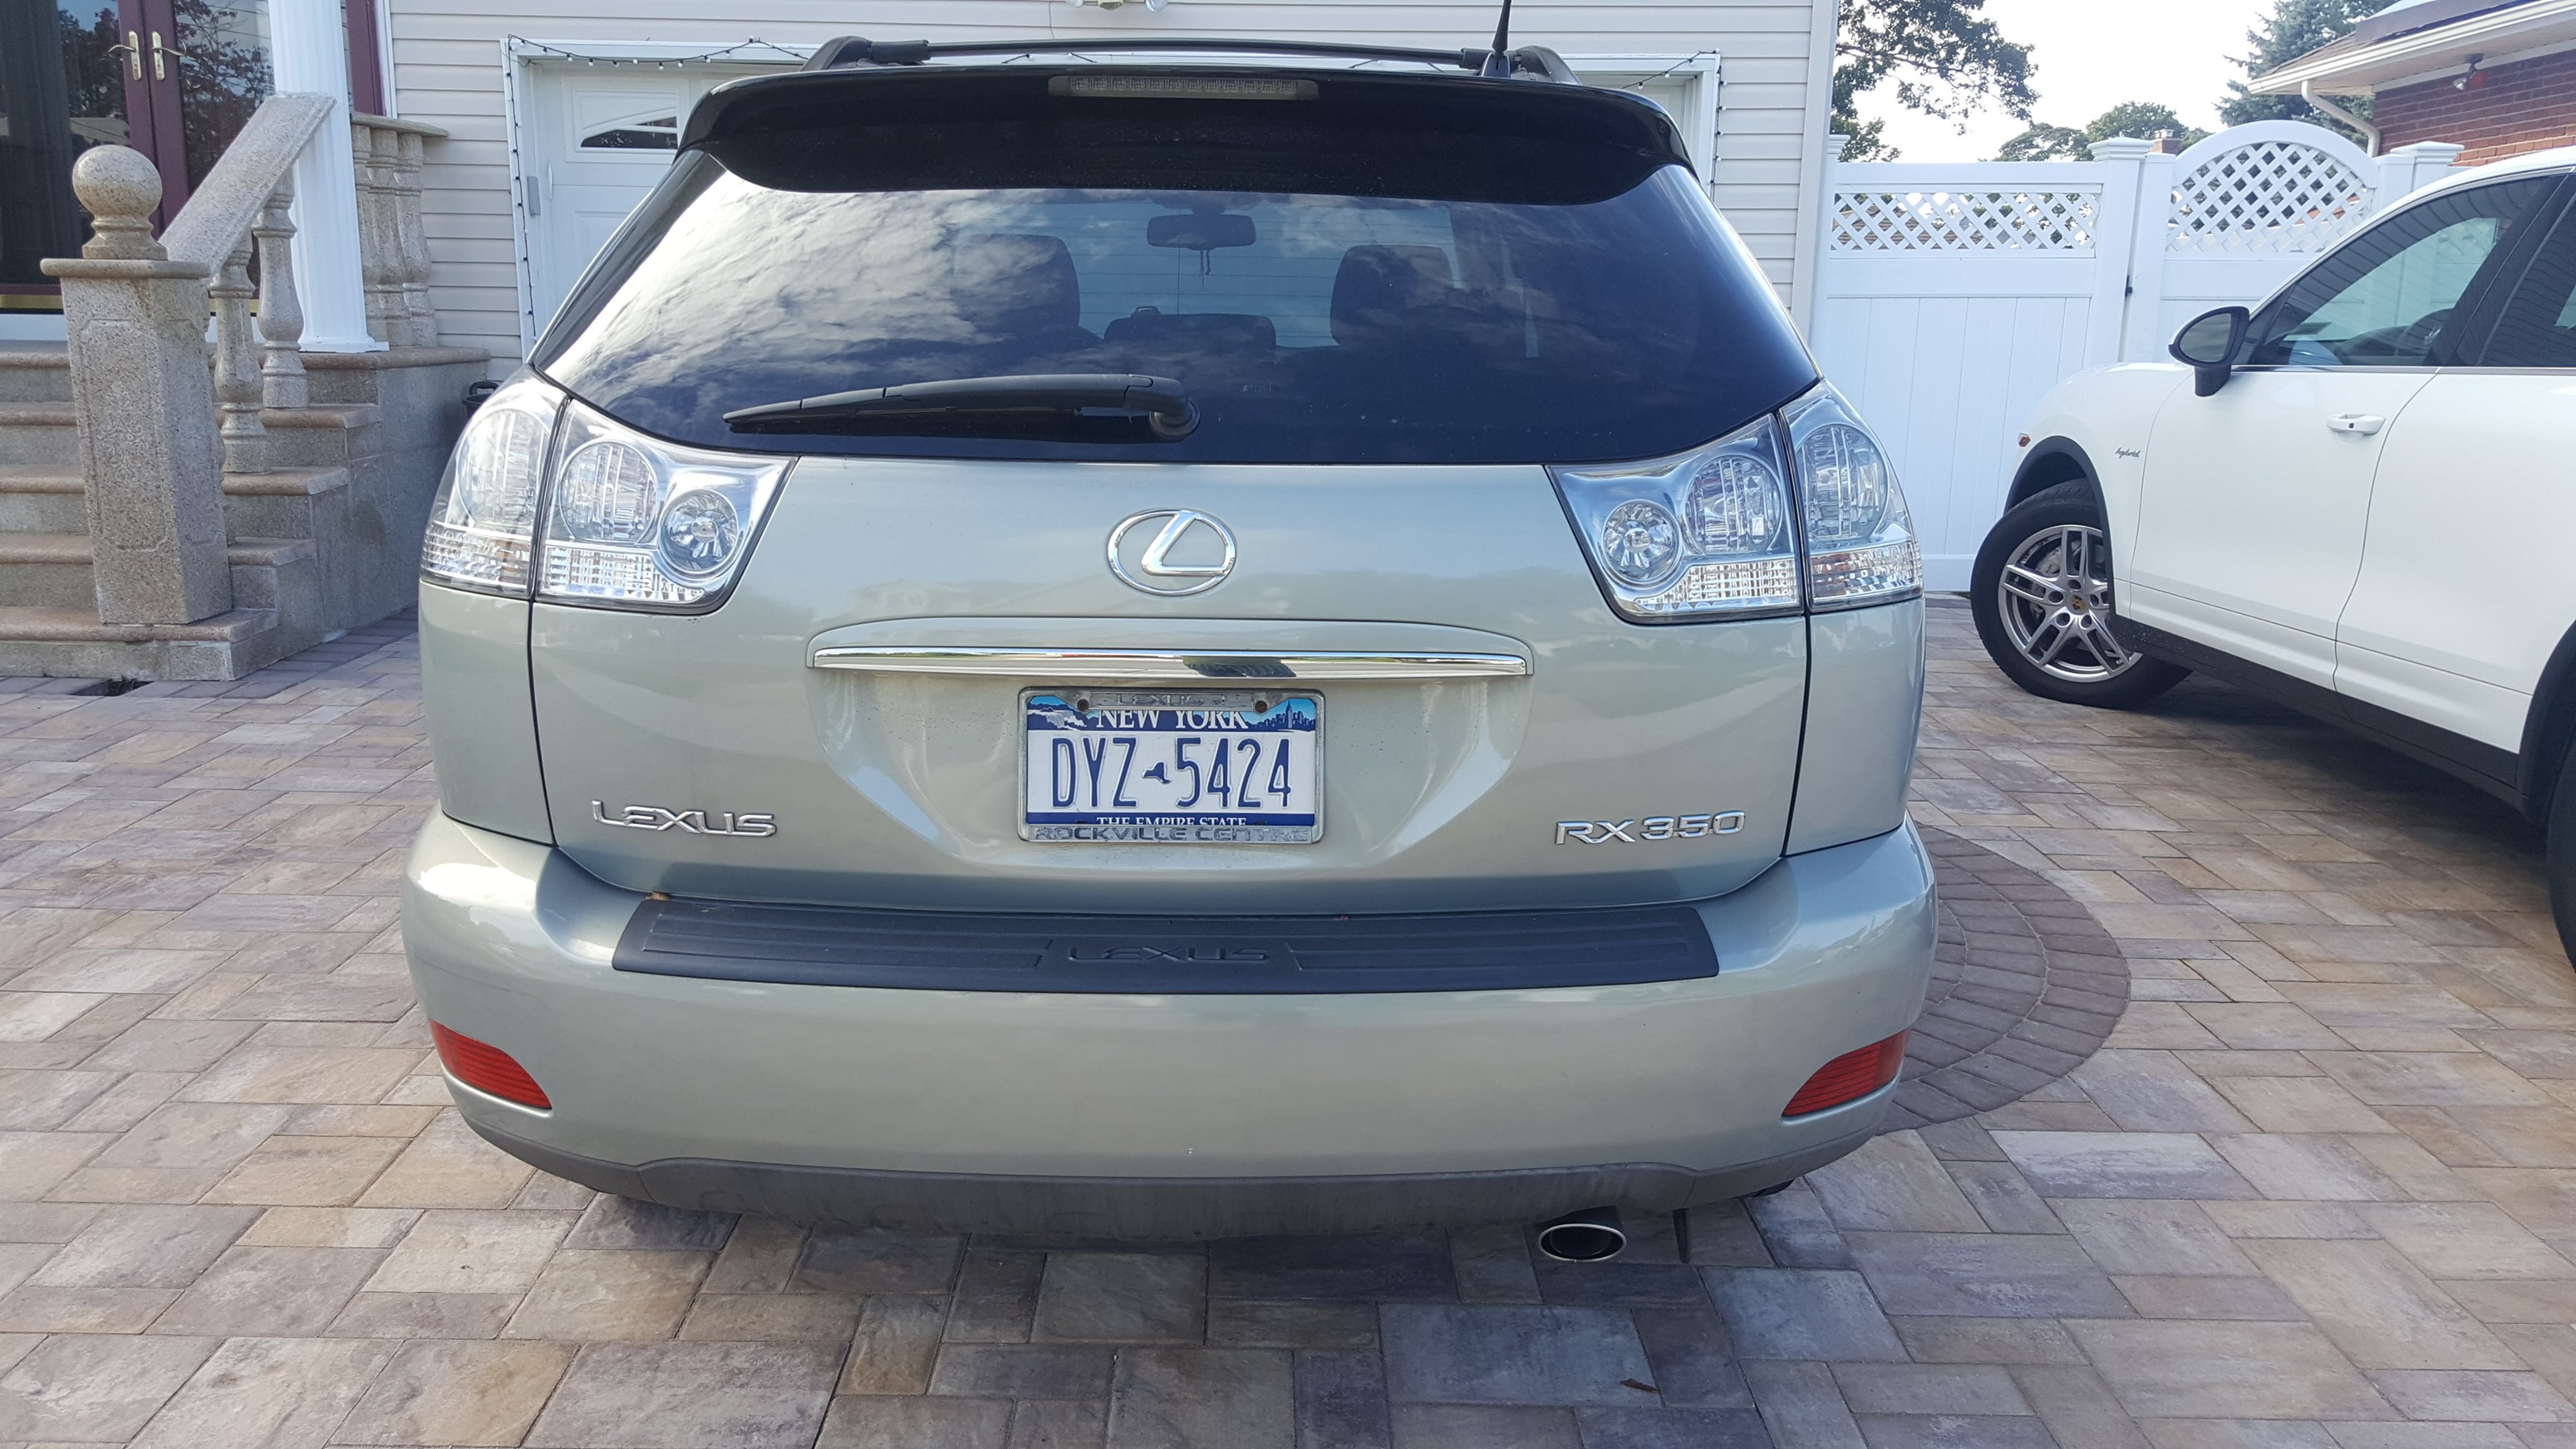 SUV For Sale Used Lexus RX 350 Cars in East Meadow AD